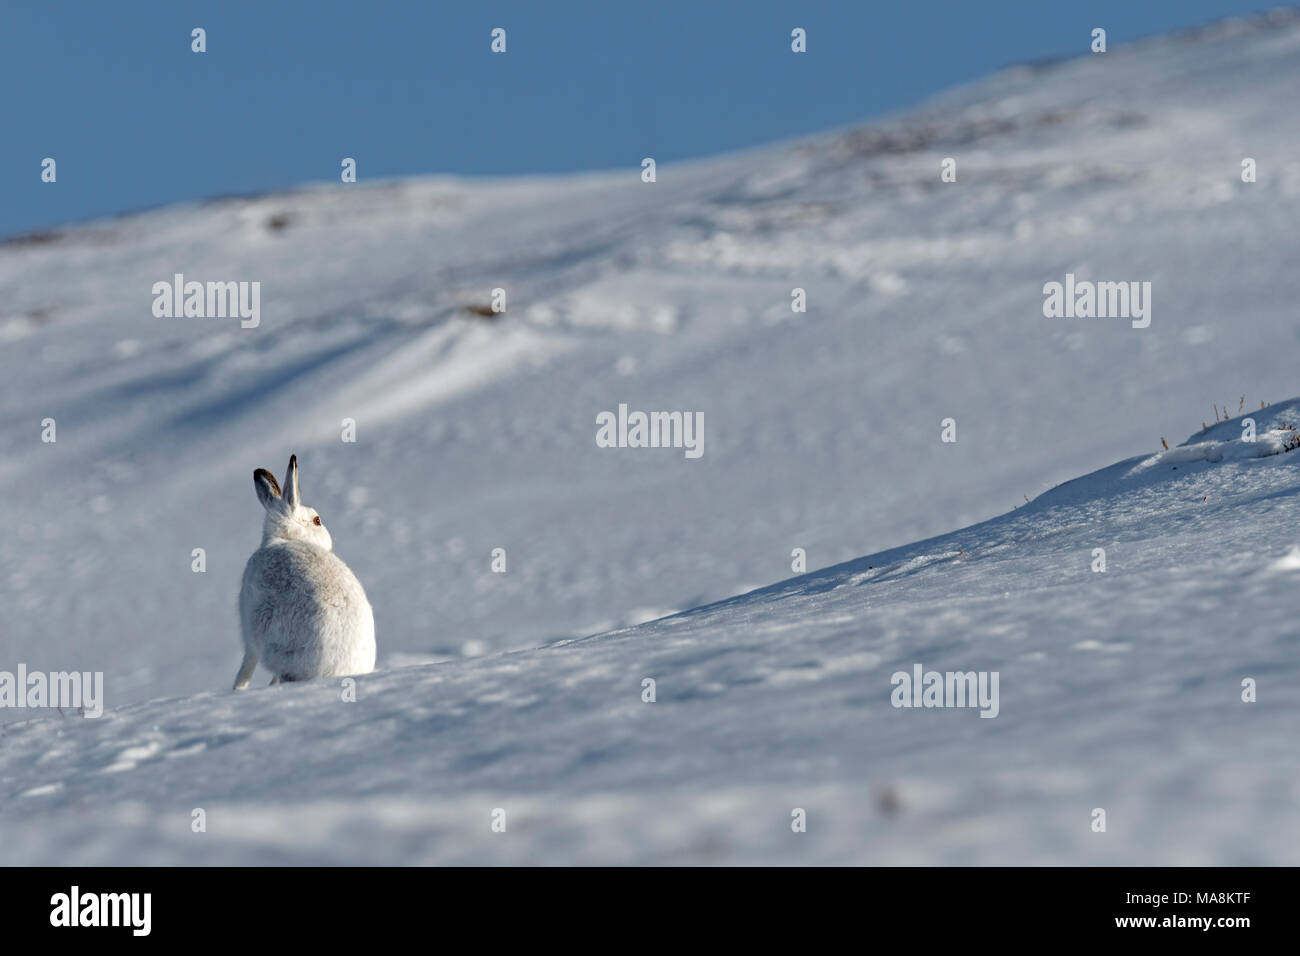 Grand angle de vue d'un lièvre variable (Lepus timidus) assis sur une colline couverte de neige dans les Highlands écossais, mars 2018 Photo Stock